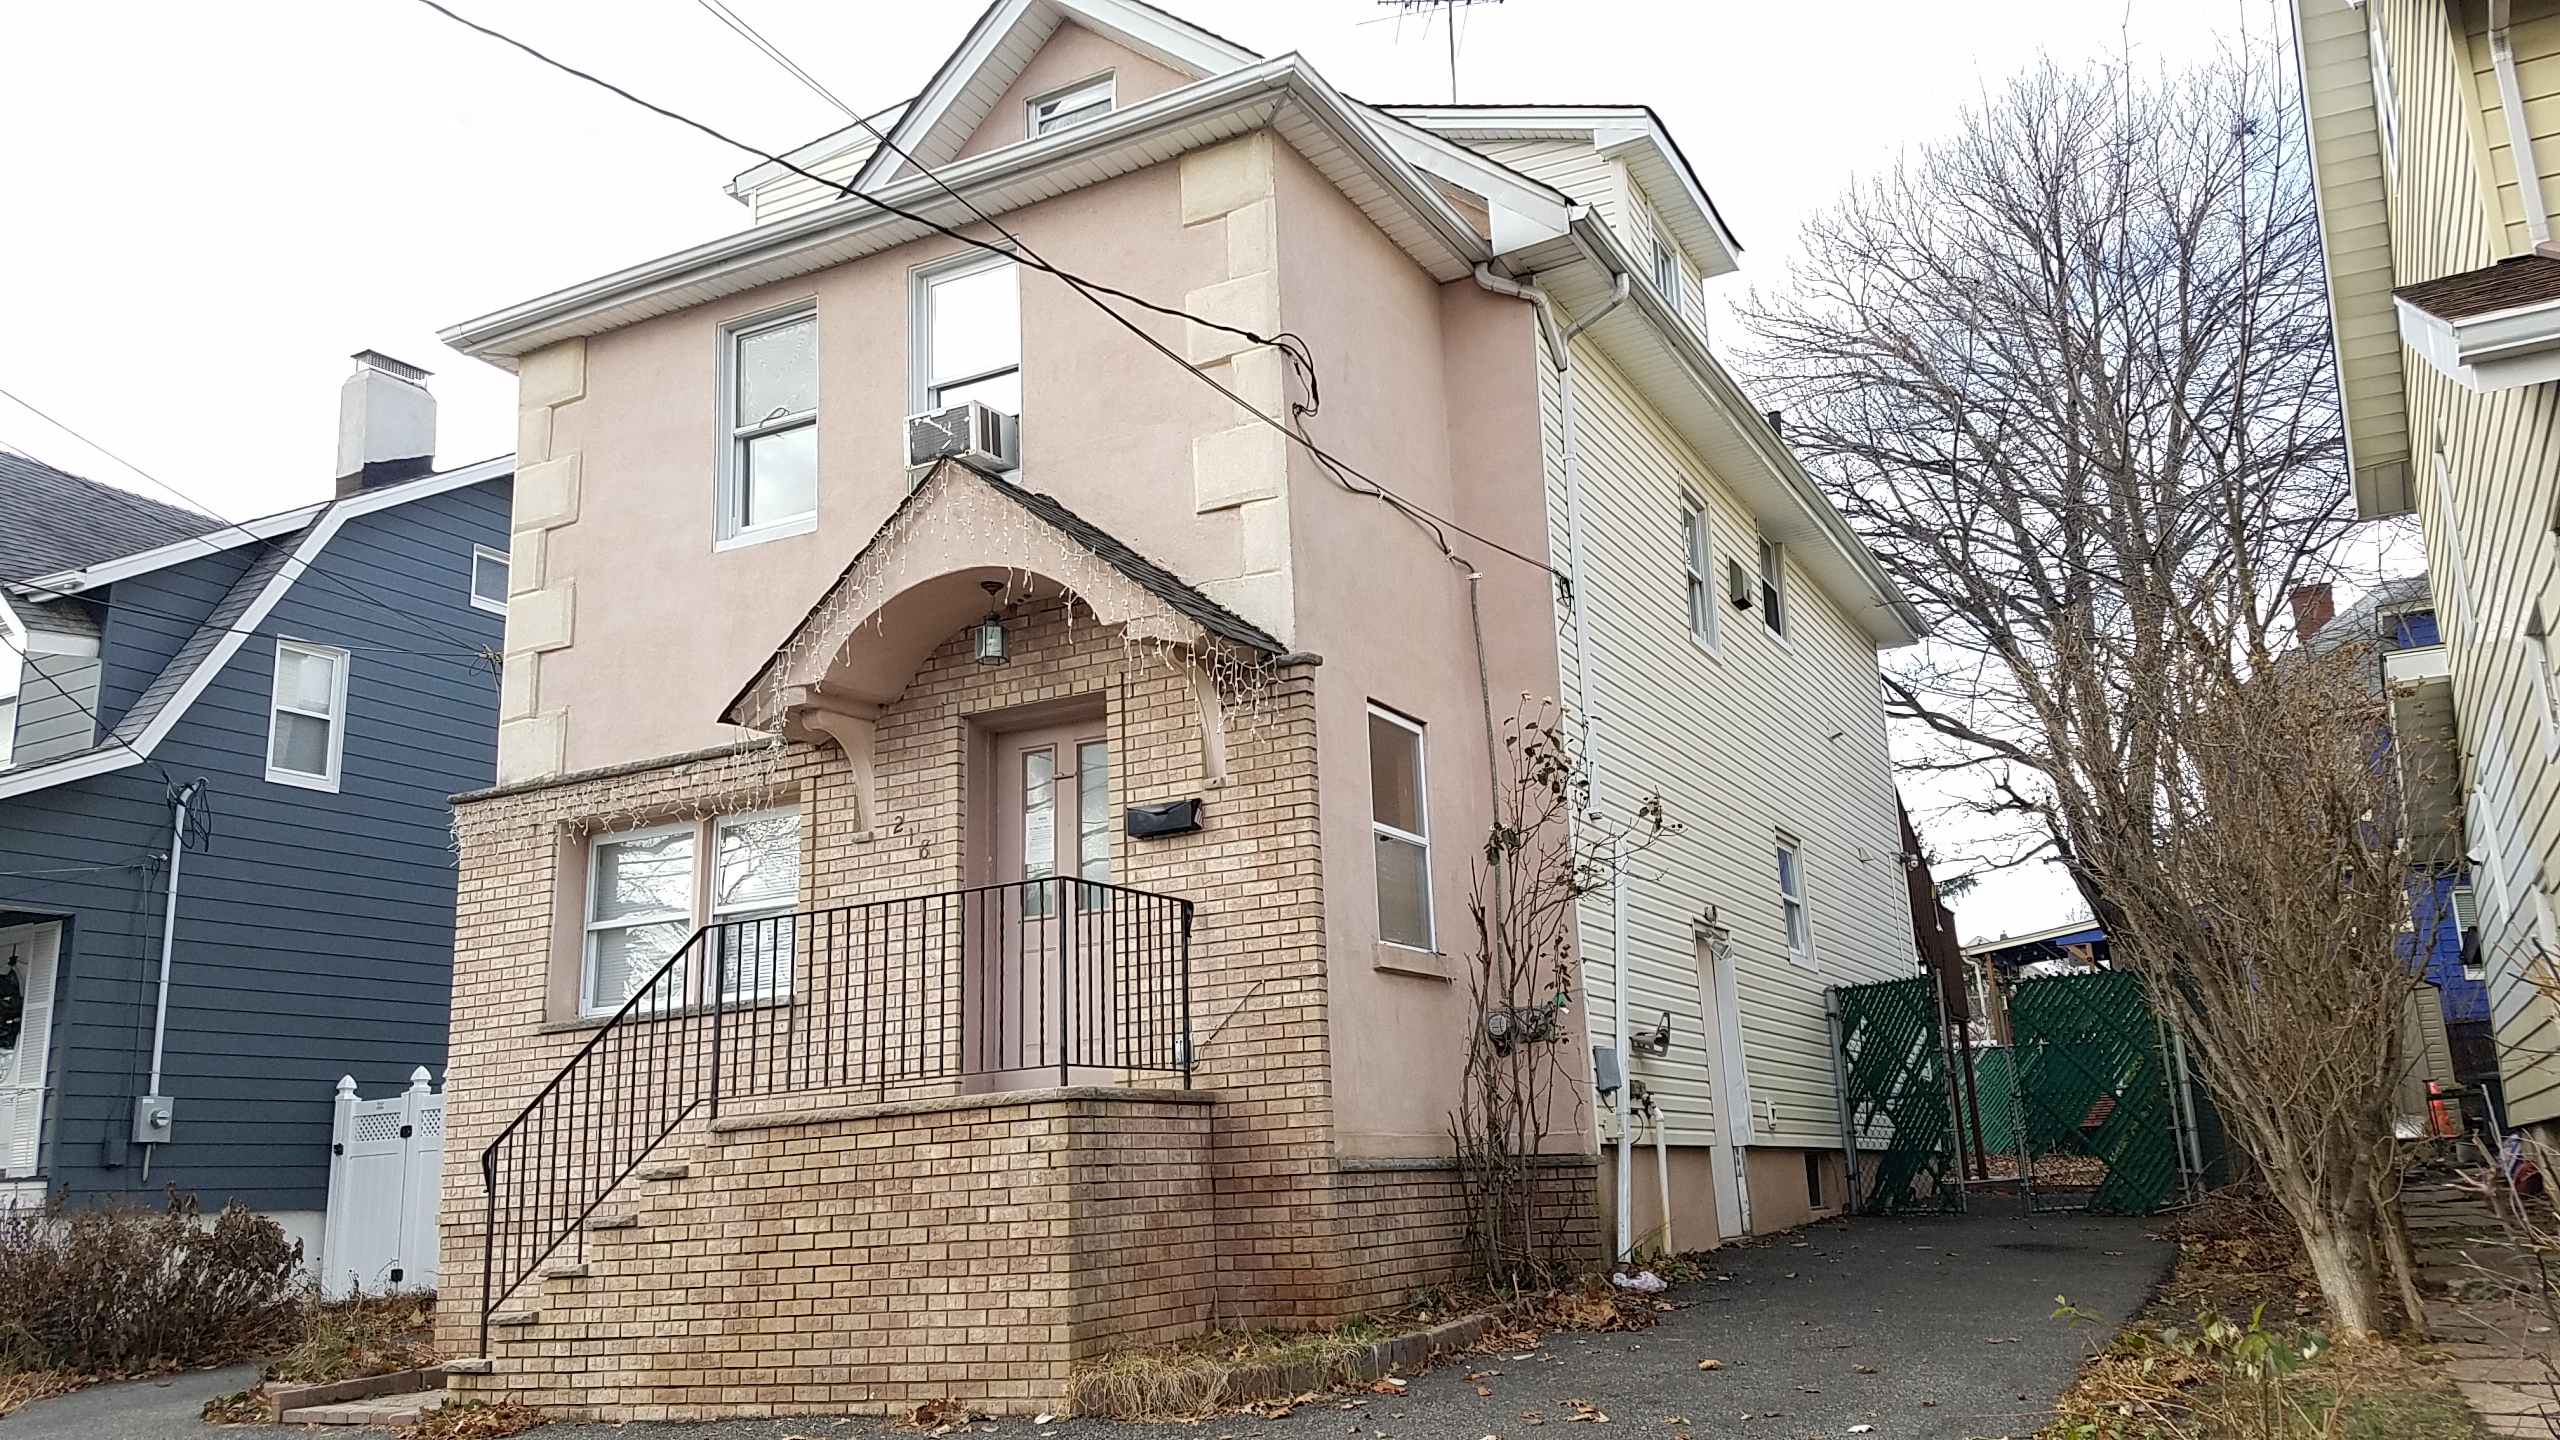 UNDER CONTRACT- 218 TEANECK RD. RIDGEFIELD PARK, NJ 07660 – $315,000